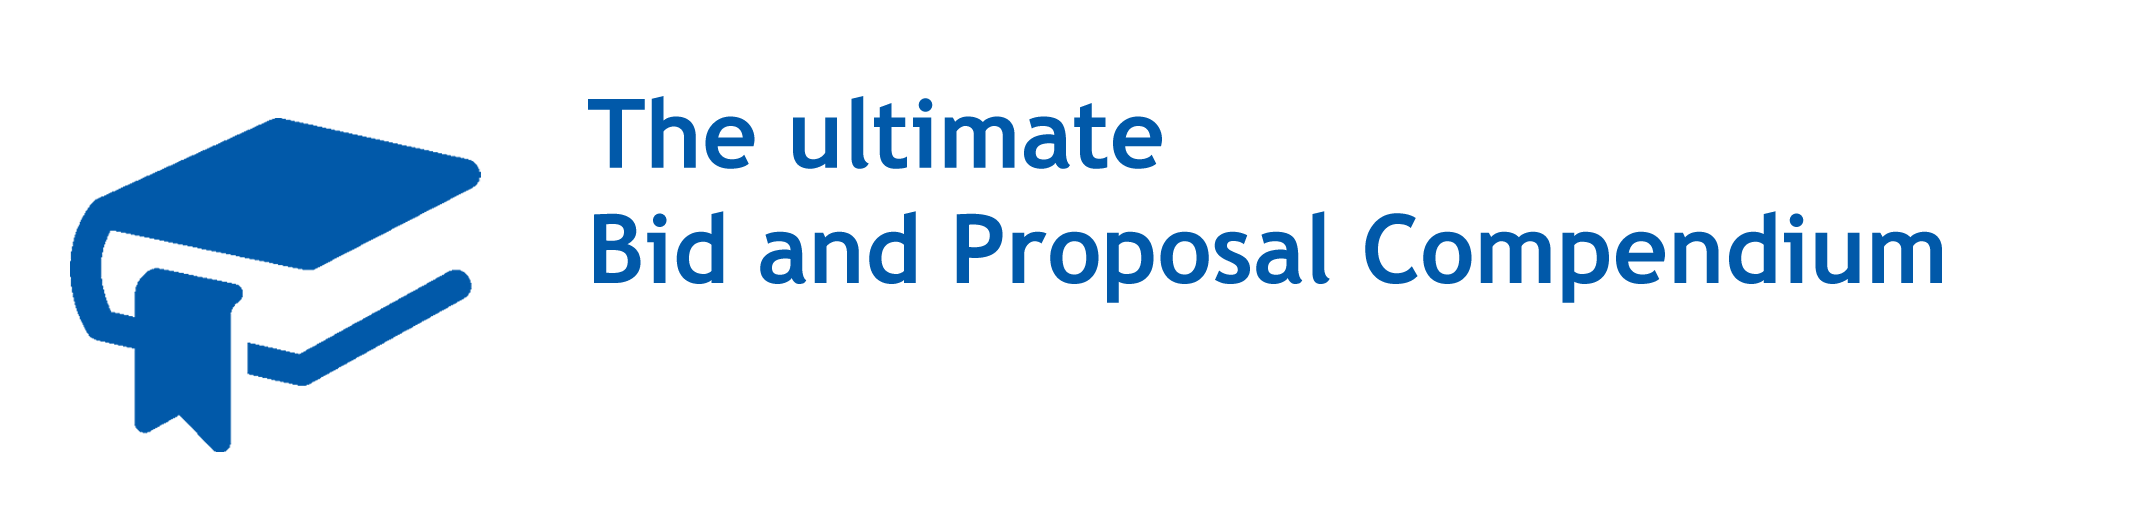 The Ultimate Bid and Proposal Compendium